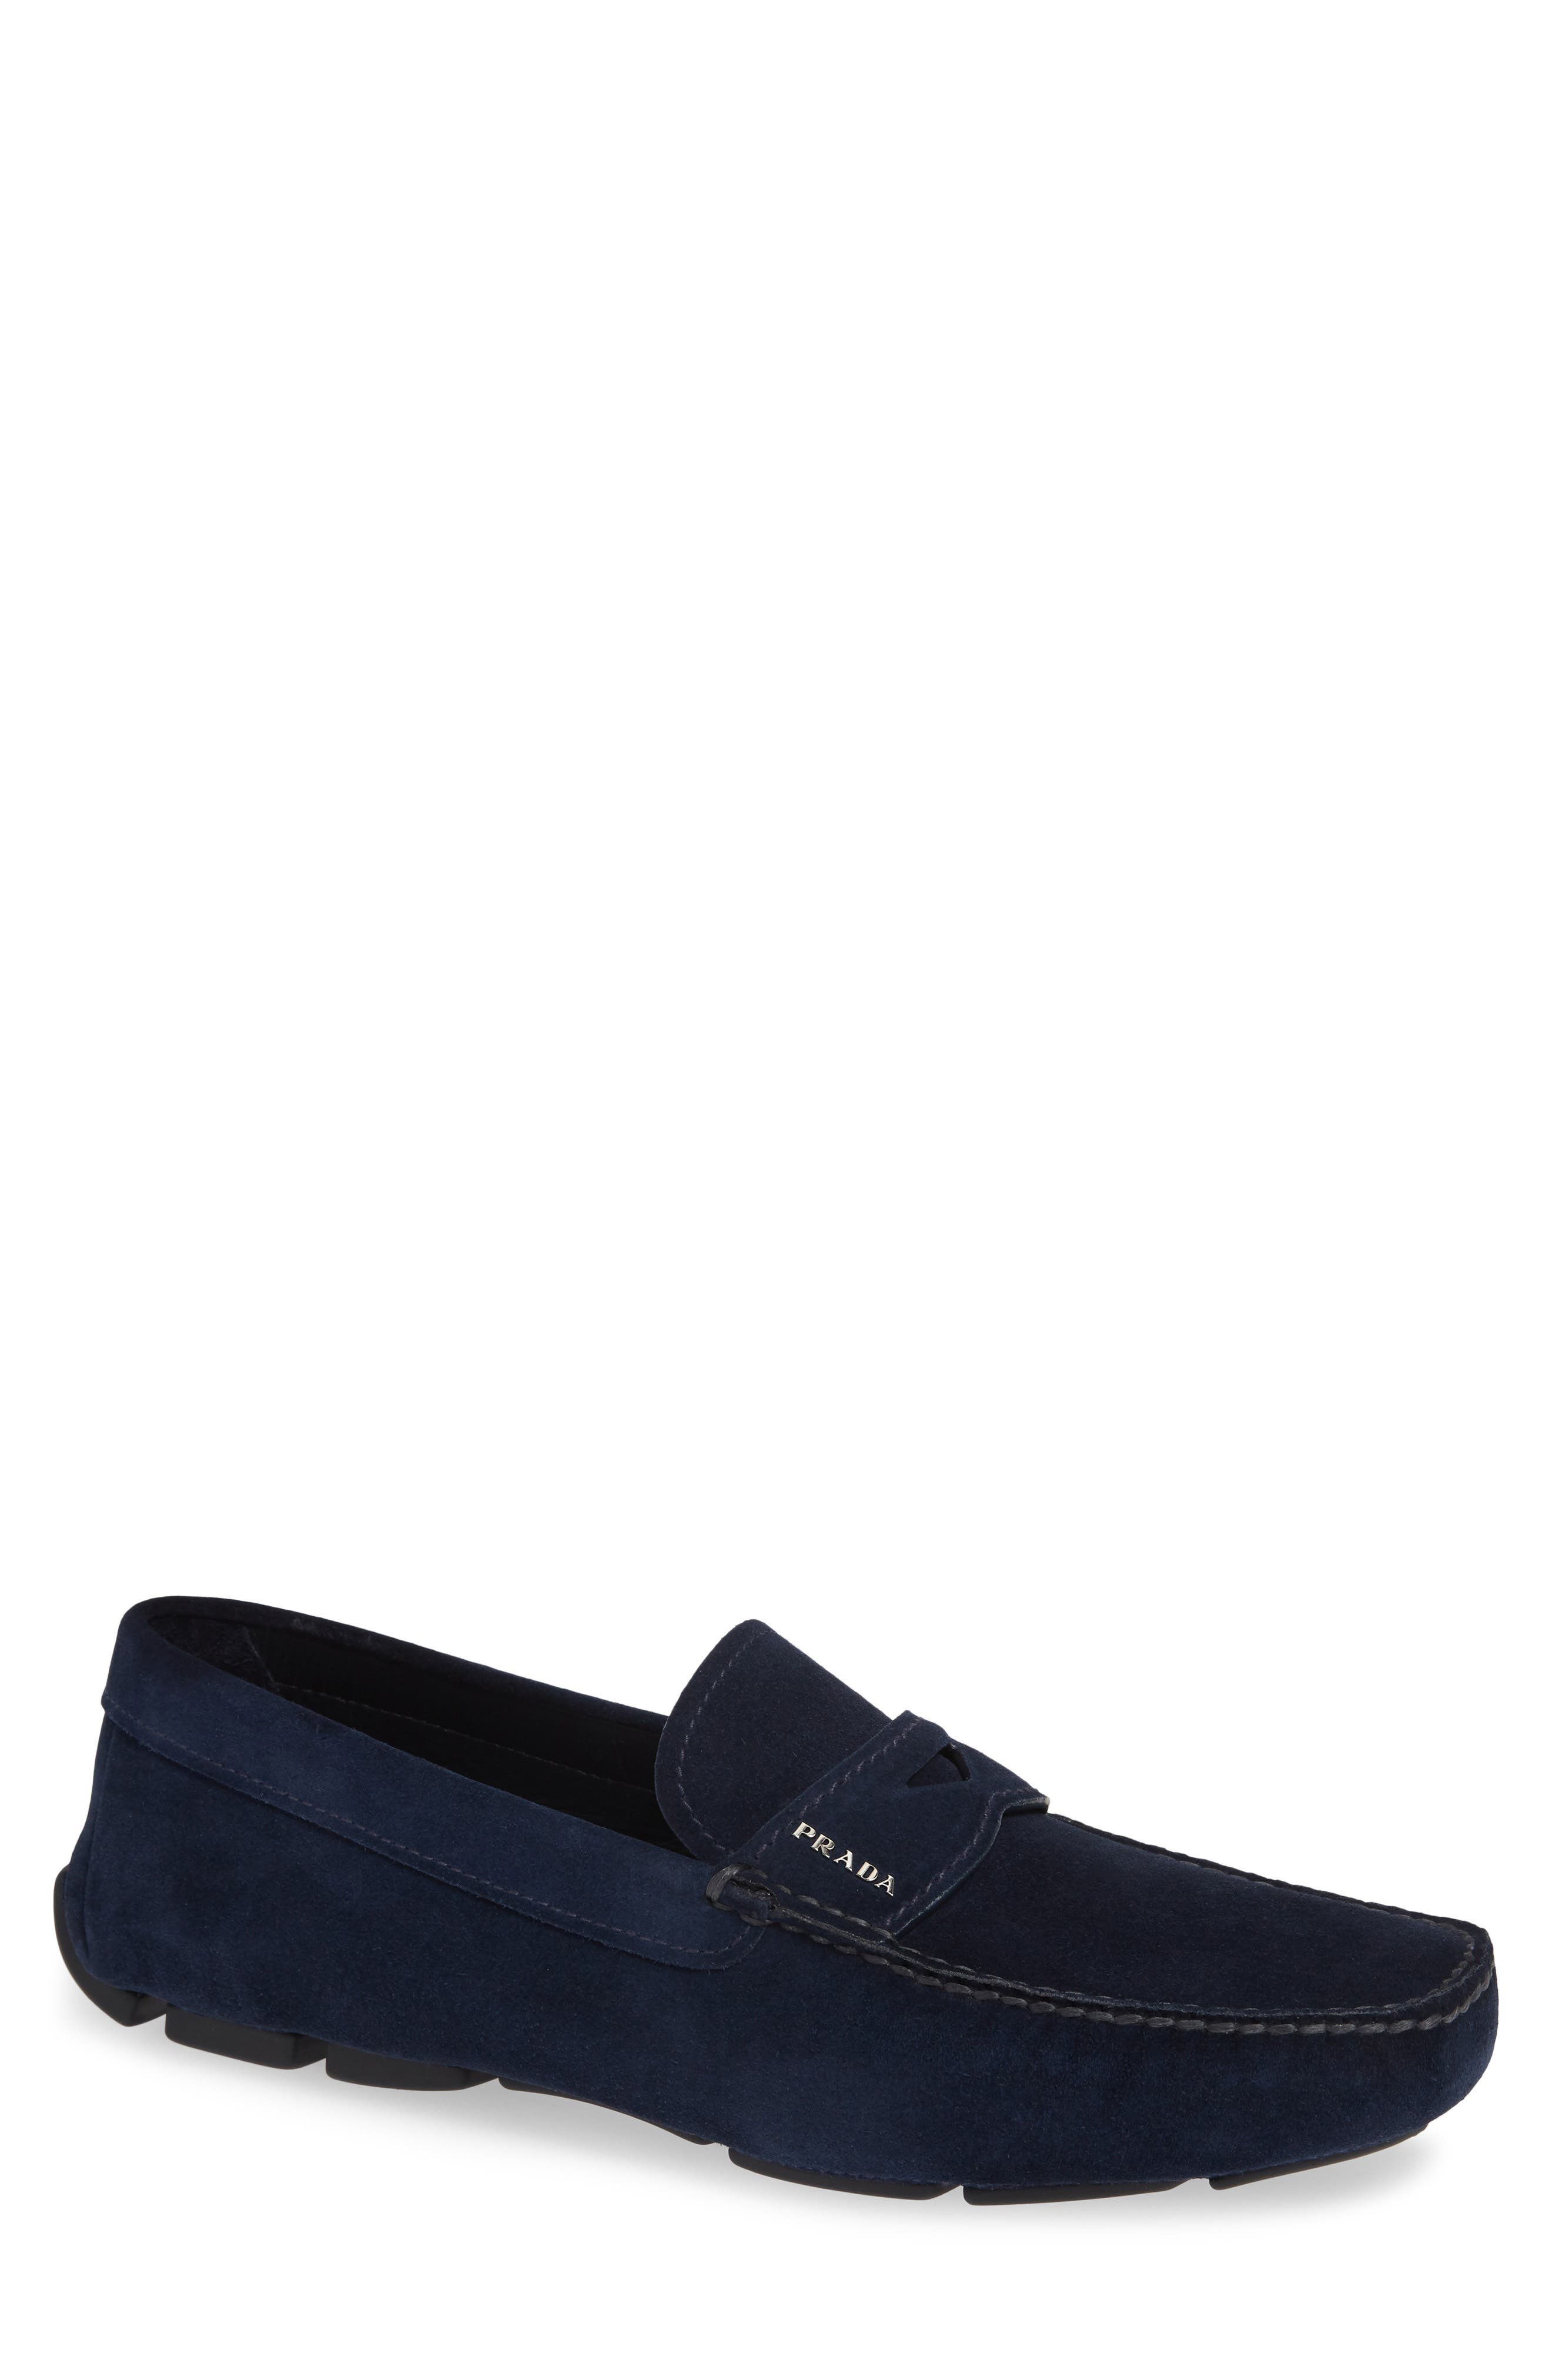 Driving Shoe,                         Main,                         color, OLTREMARE BLUE